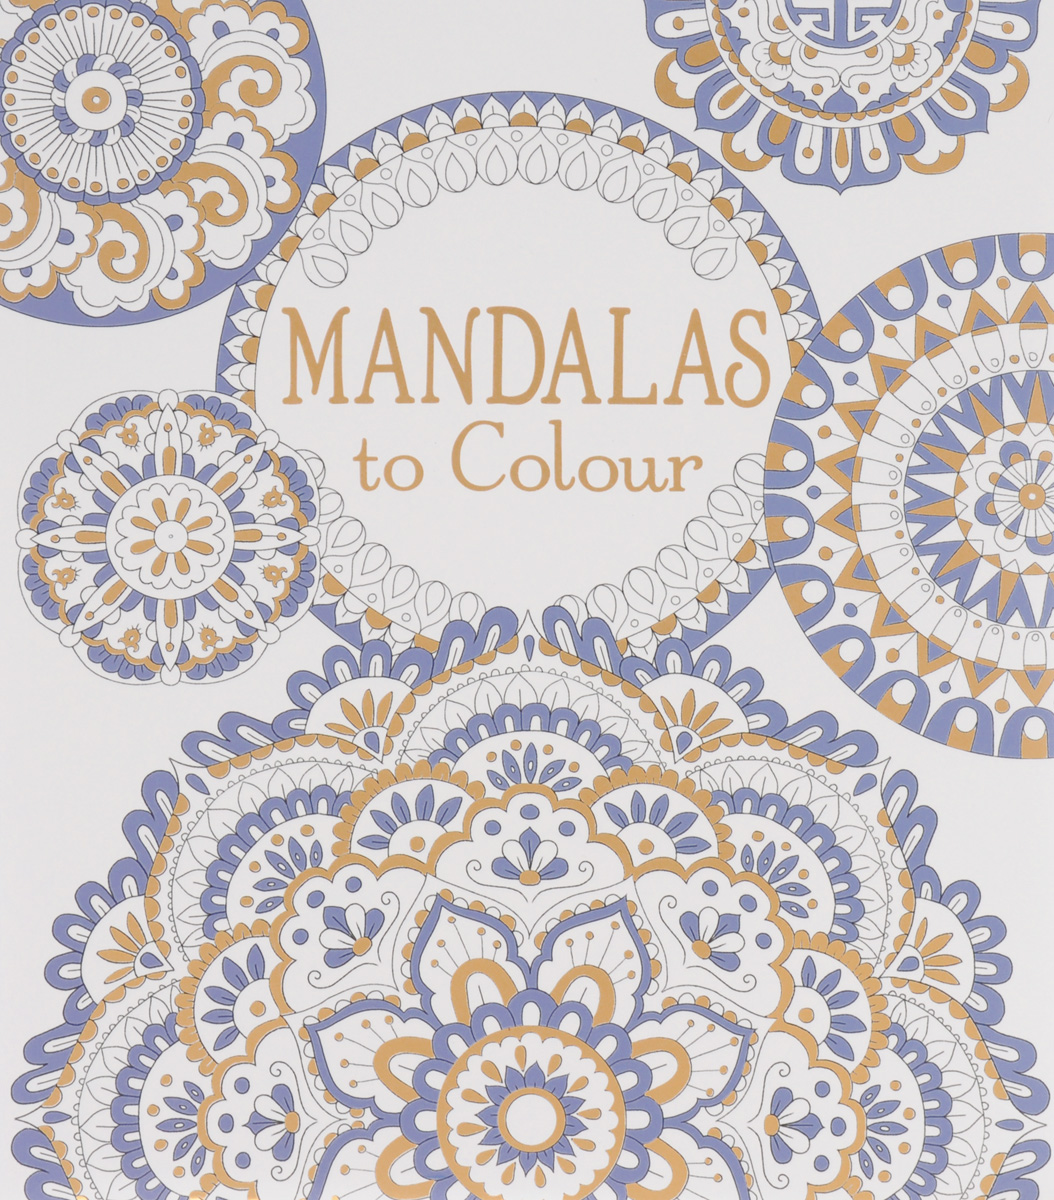 MANDALAS TO COLOUR coloring mandalas 2 for balance harmony and spiritual well being